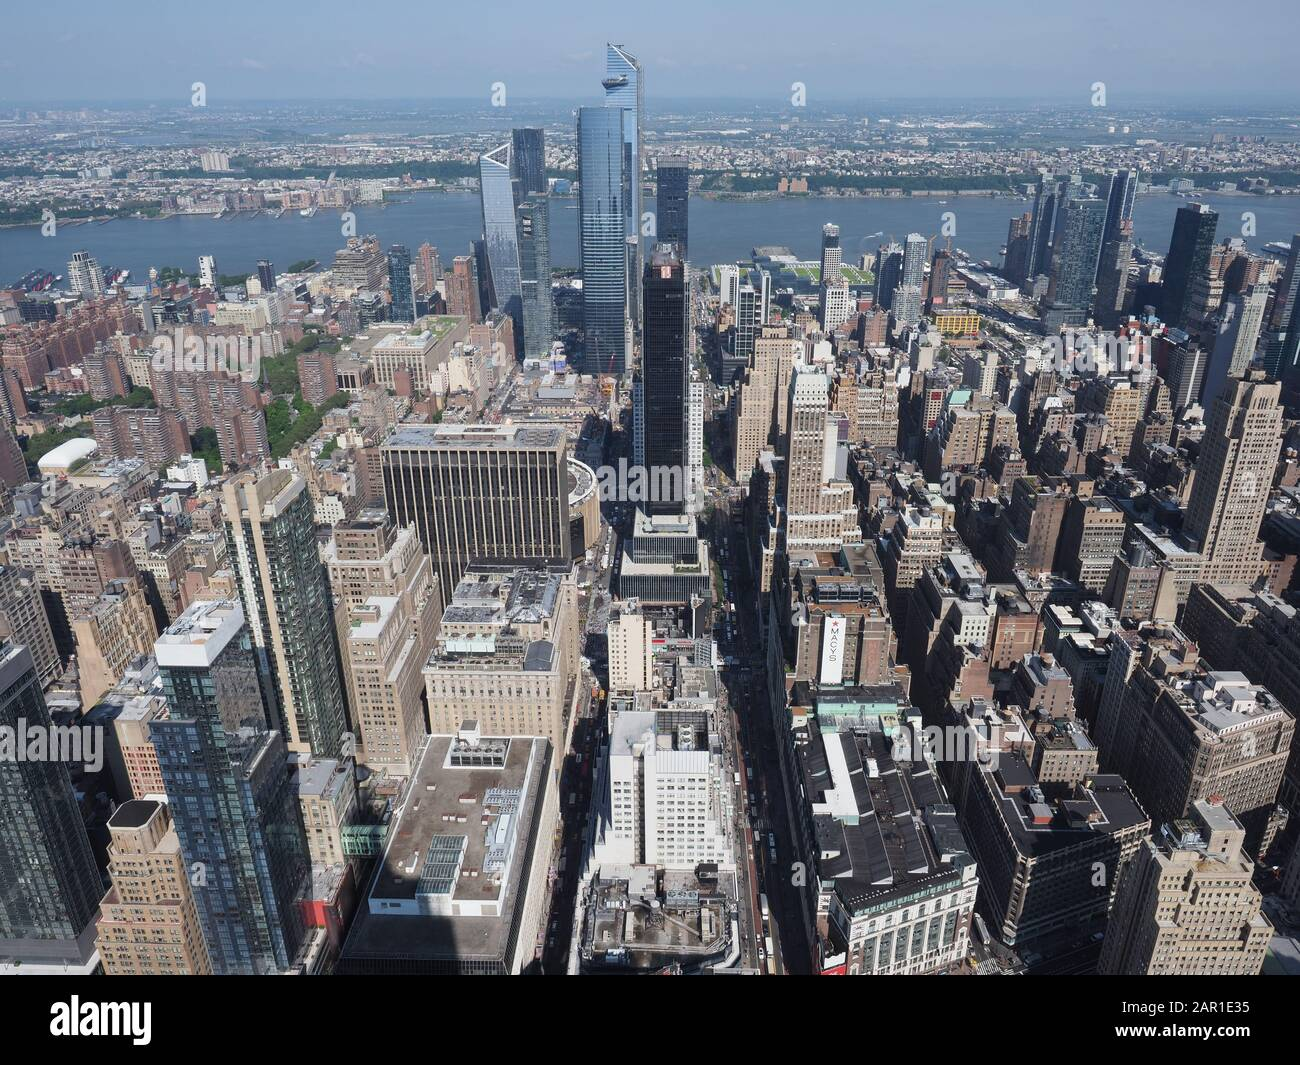 New York, USA - May 31, 2019: Aerial view of 34th street with Macy's and Hudson Yards. Stock Photo